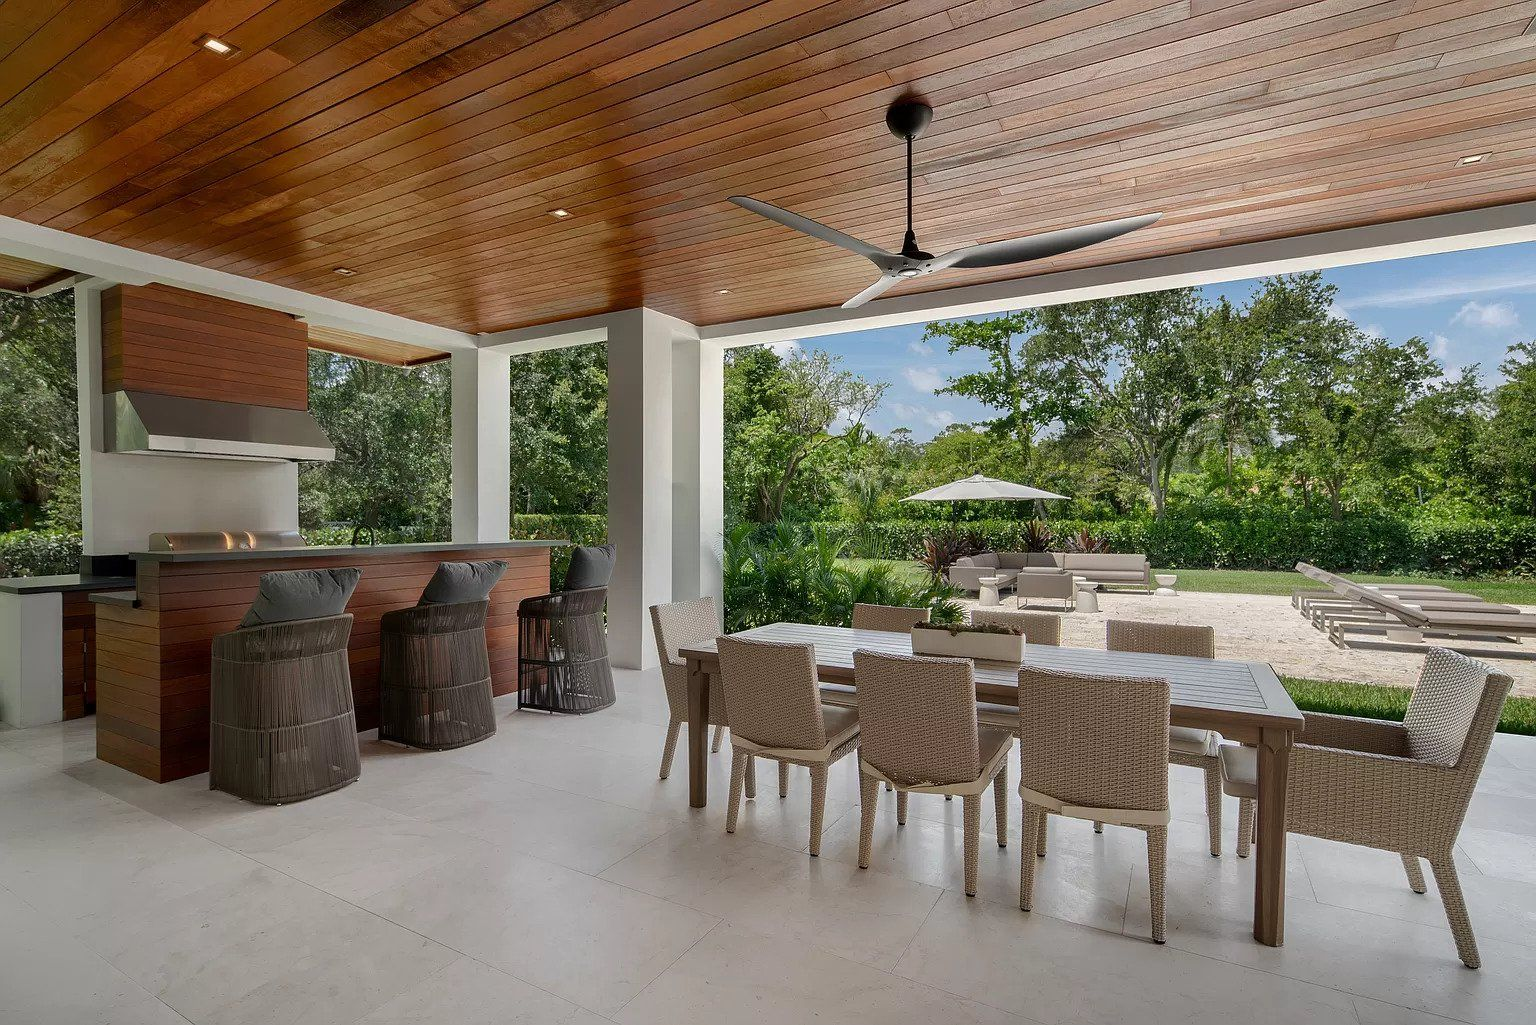 Pin By Gabriel Del Rio On Miami Outdoor Kitchen Living Room California Room Living Room Kitchen Kitchen Living